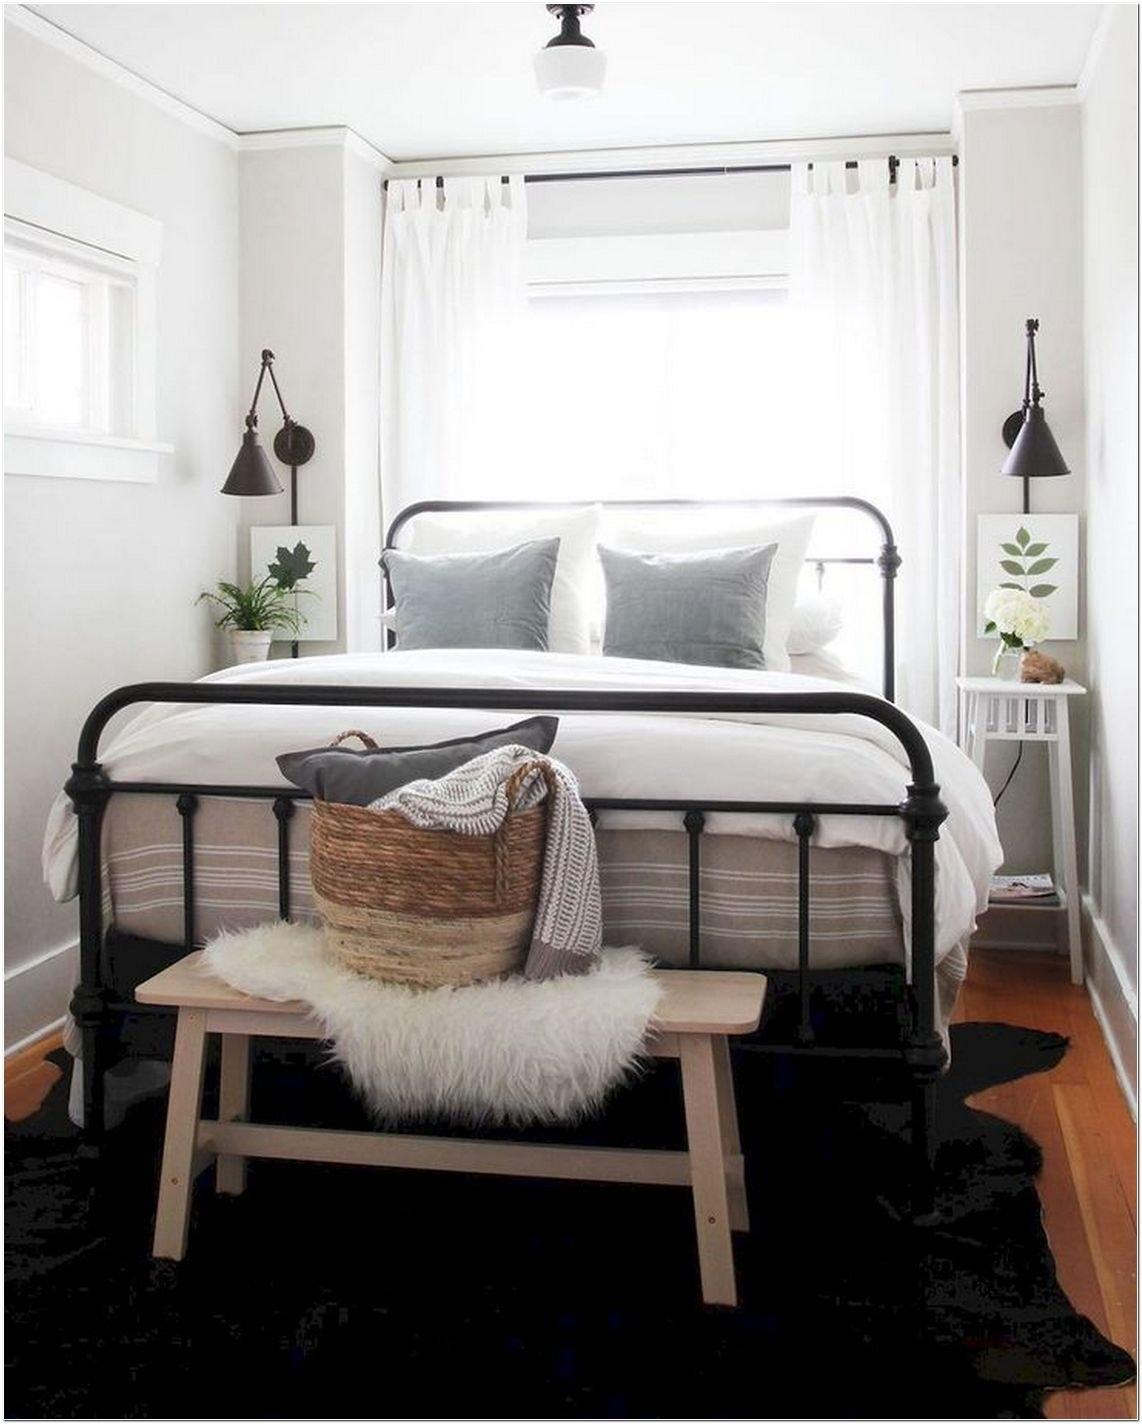 74 Small Master Bedroom Ideas – Couples Bedroom